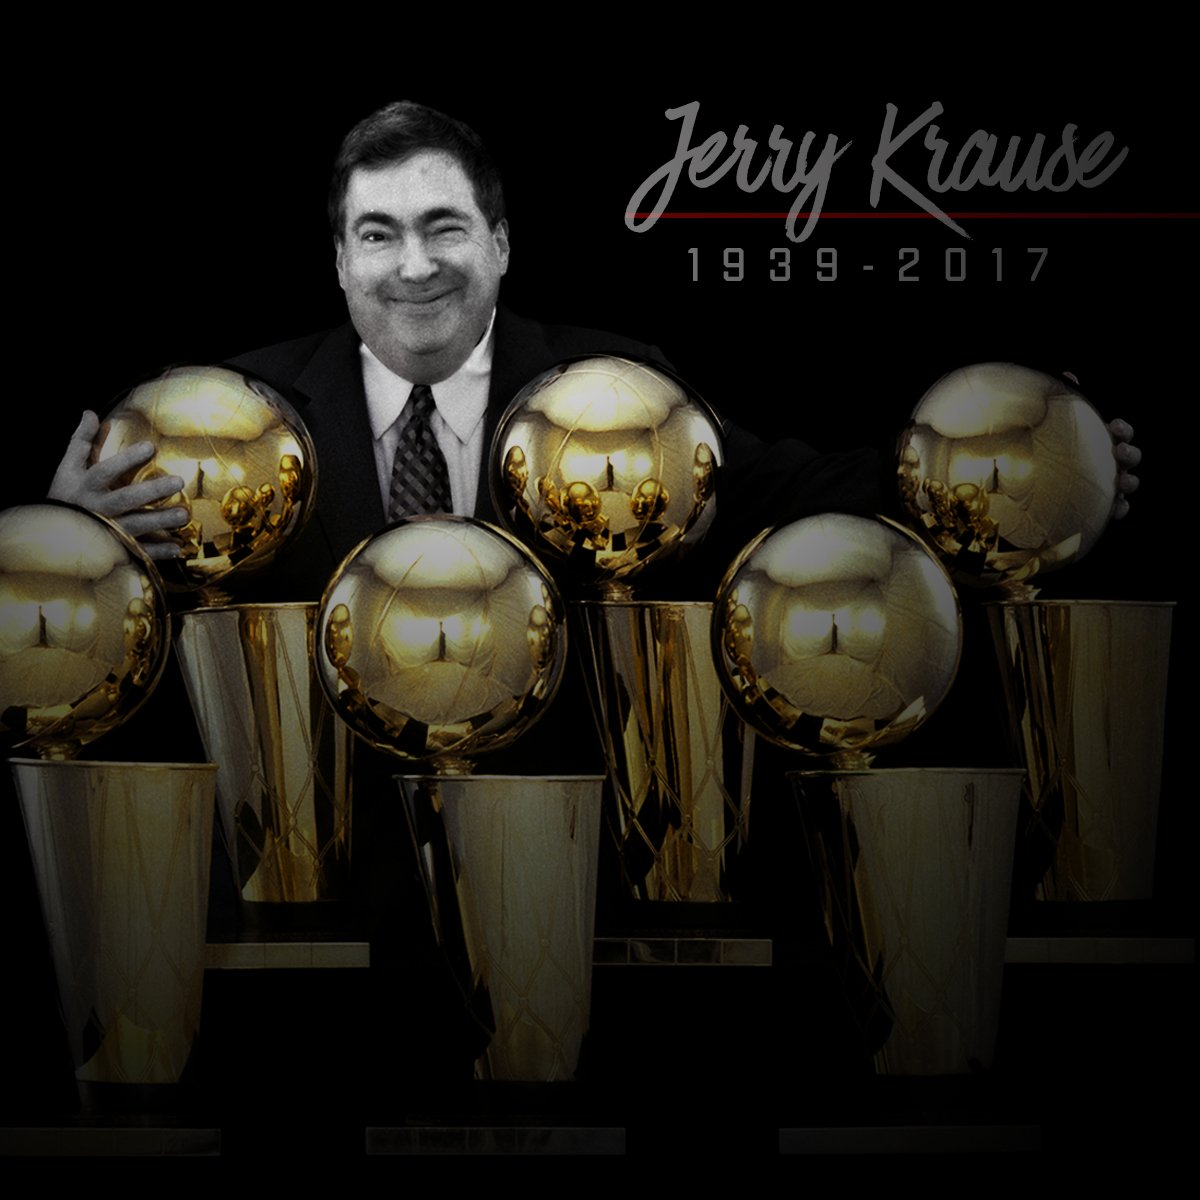 Bulls mourn the loss of Jerry Krause: https://t.co/AlCu8ITH0Y https://...